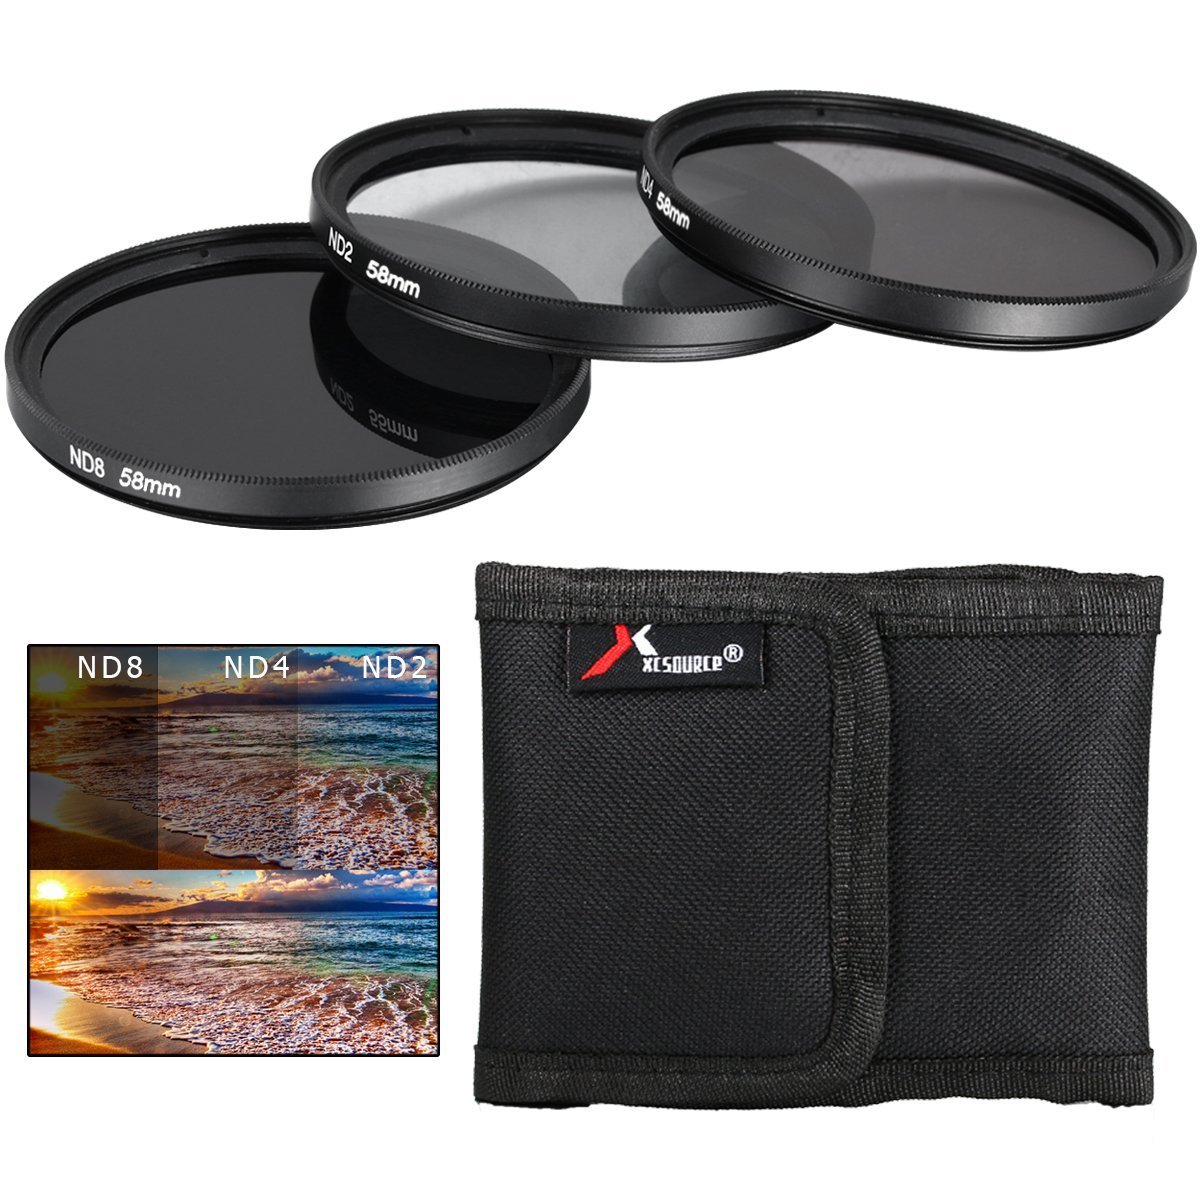 XCSOURCE® 58mm ND2 ND4 ND8 Neutral Density Filter Set for Canon Rebel XS T5i T4i T3i T2i T1i T3 6D 7D 70D 60D 700D 650D 1100D 1000D 600D 50D 550D 500D 40D 30D 350D 400D 450D 100D LF62 ElectricalCentre LF062